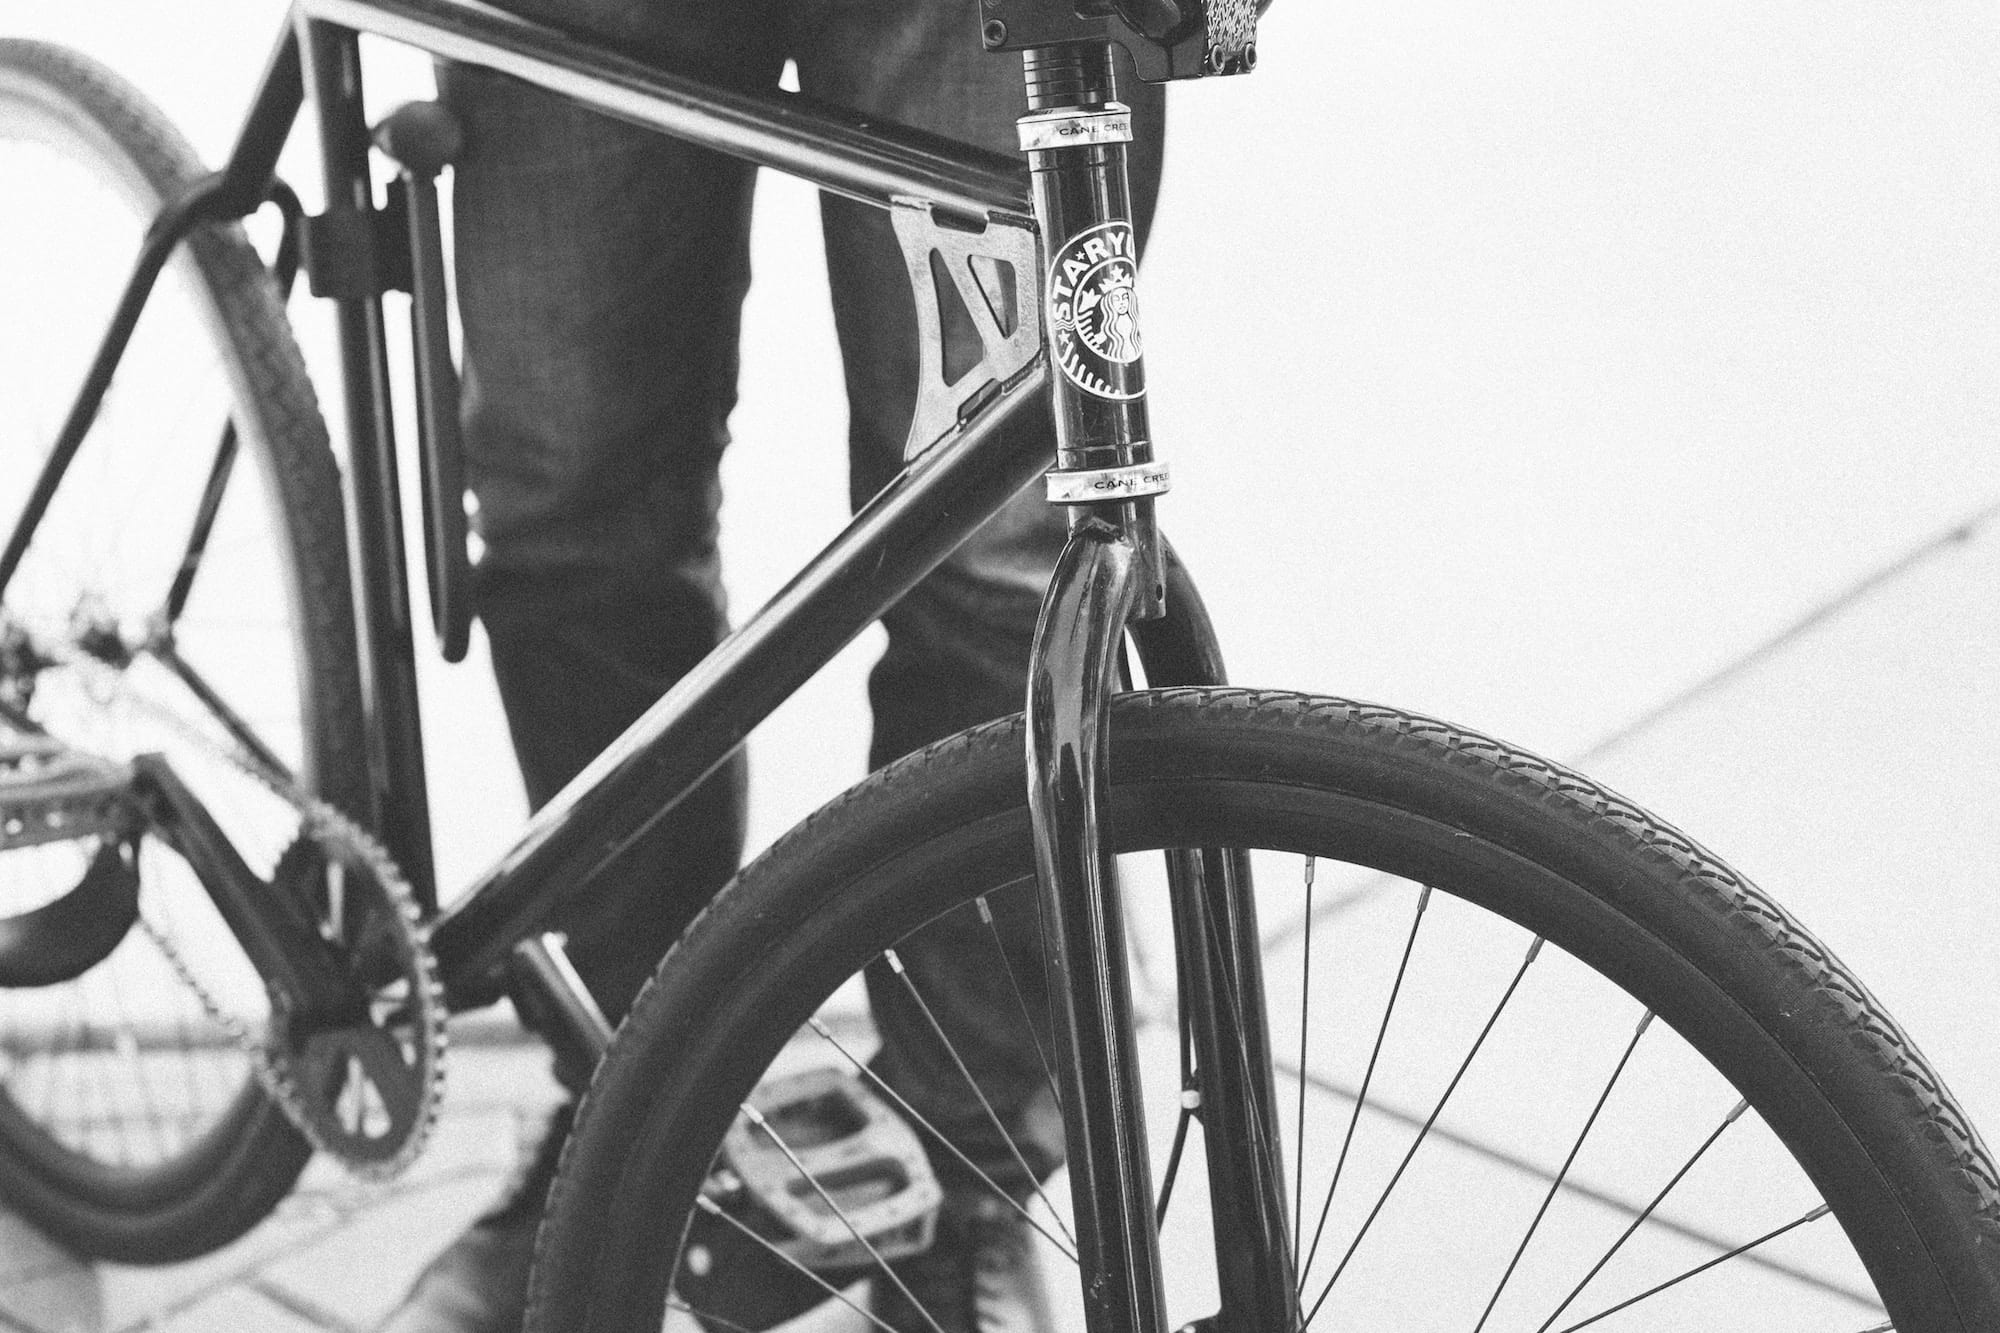 fit your bike